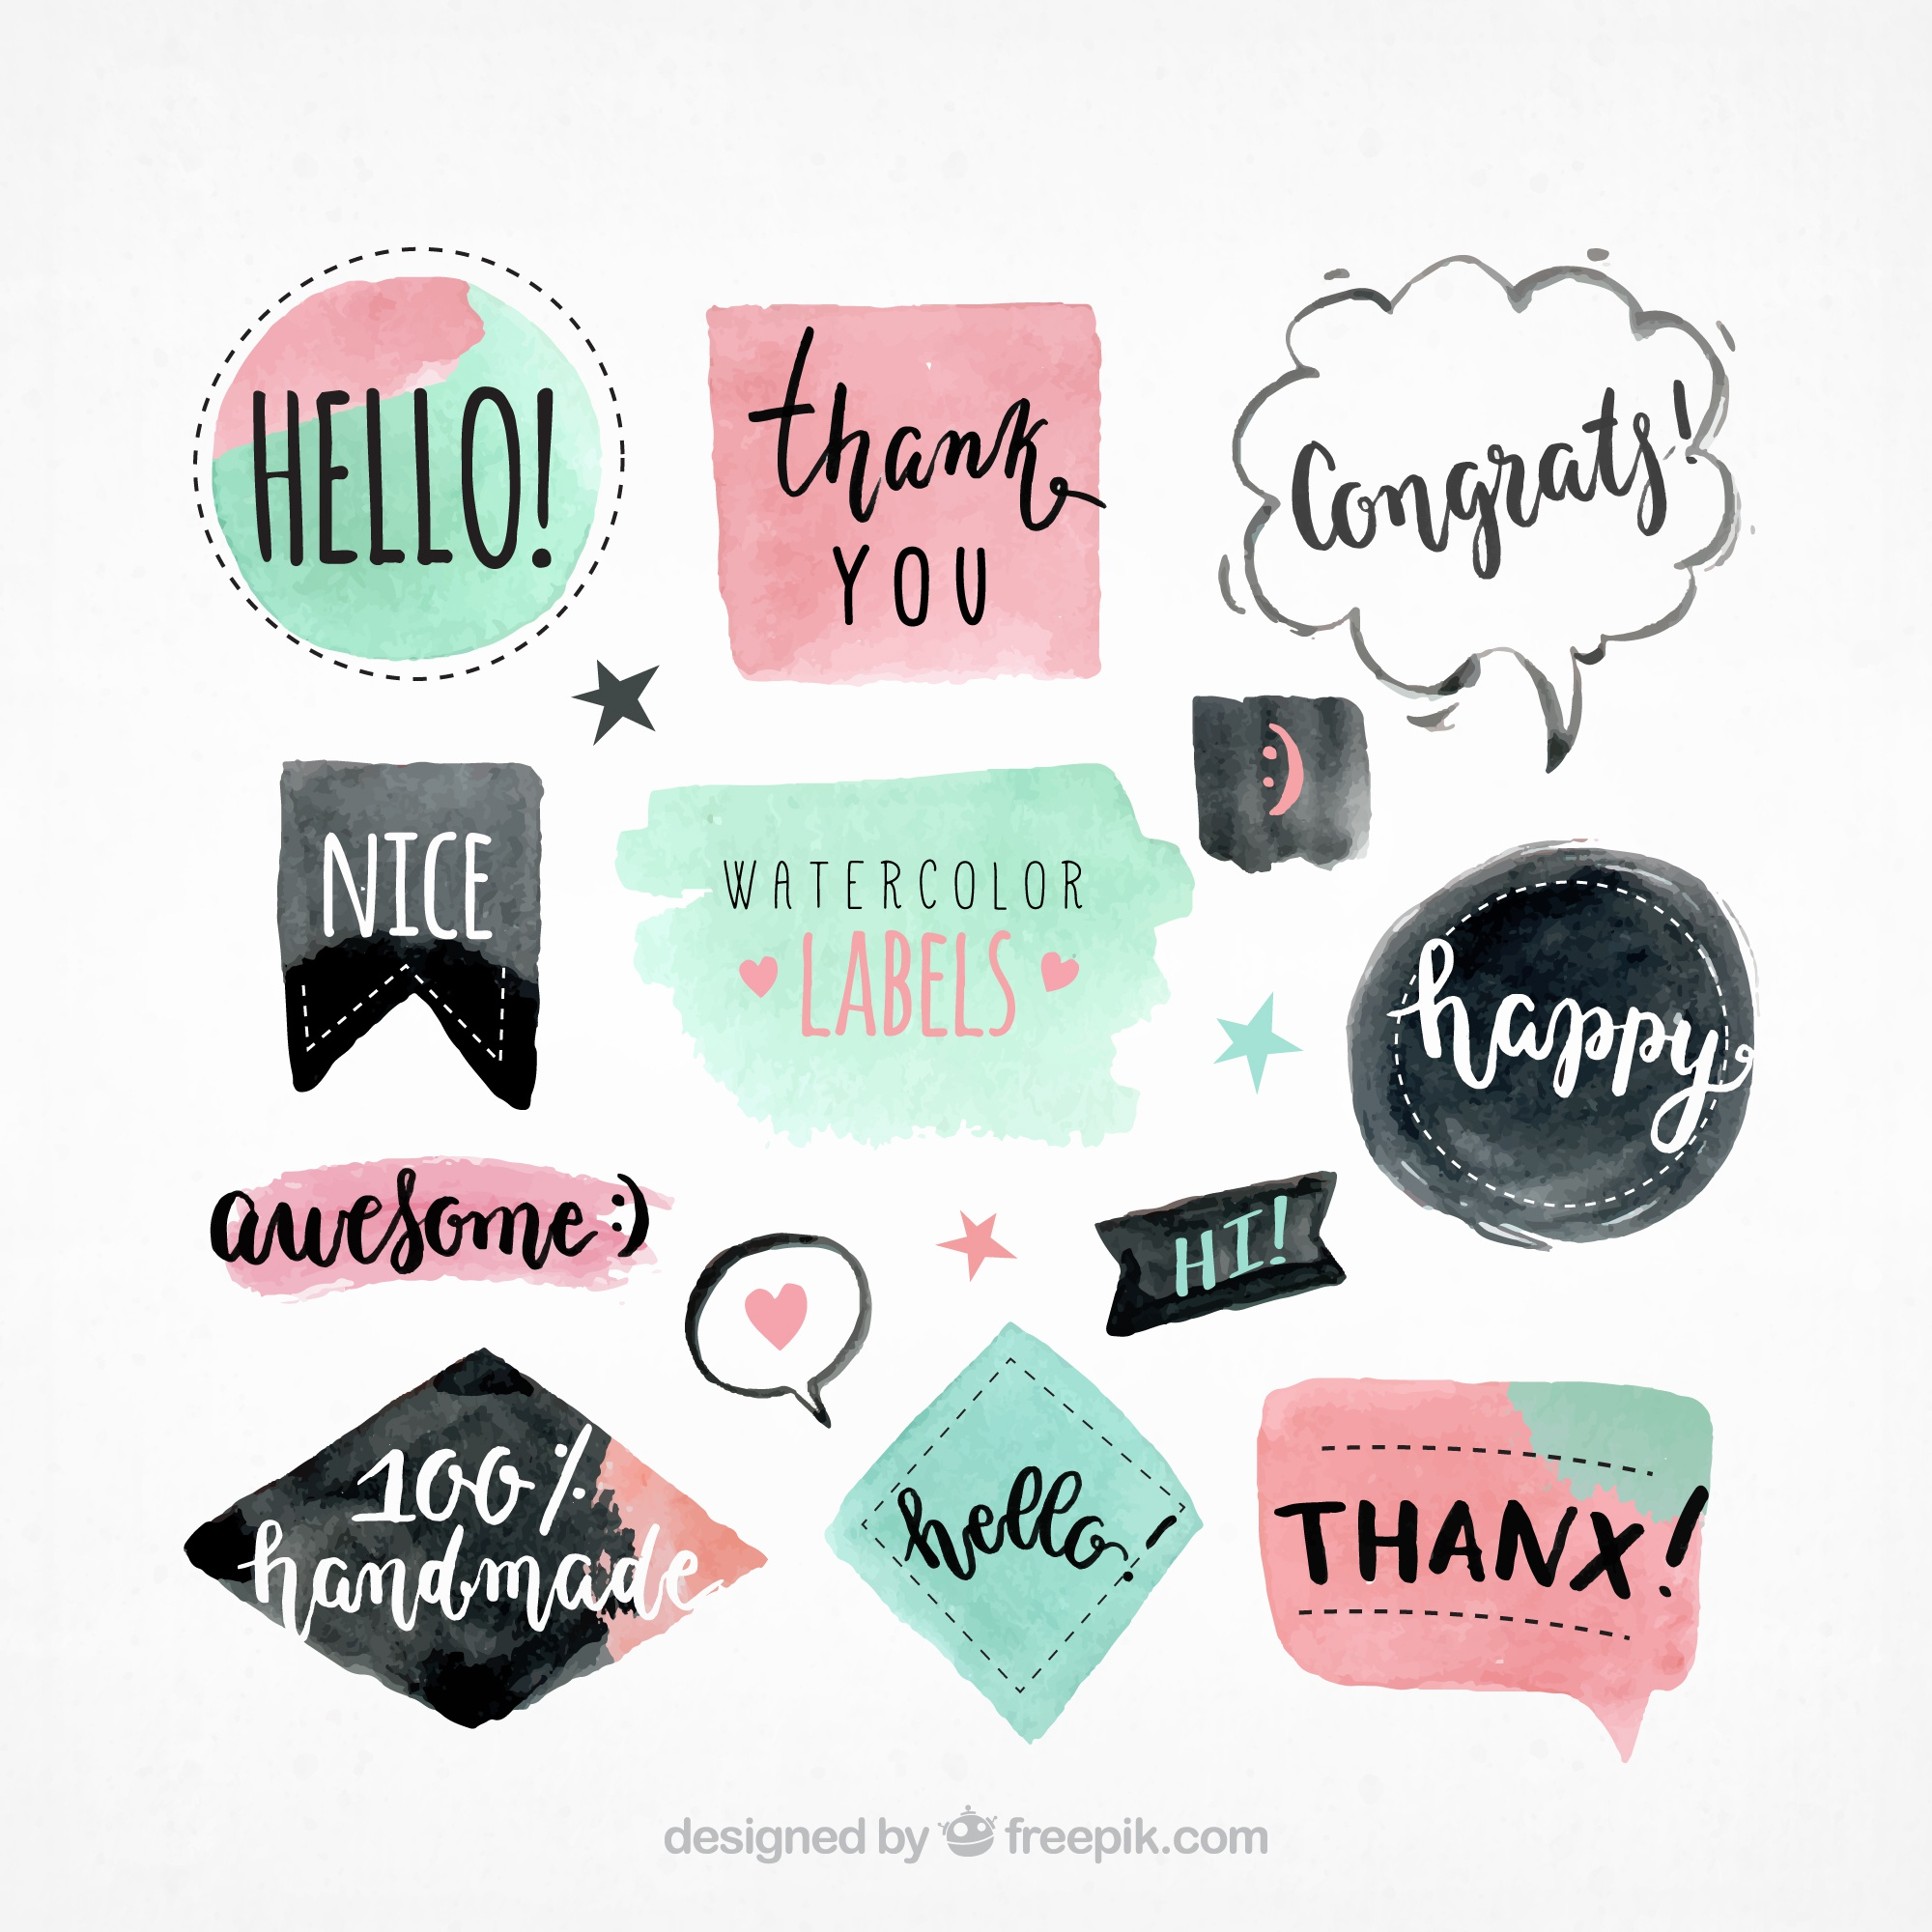 Watercolor stickers set with messages